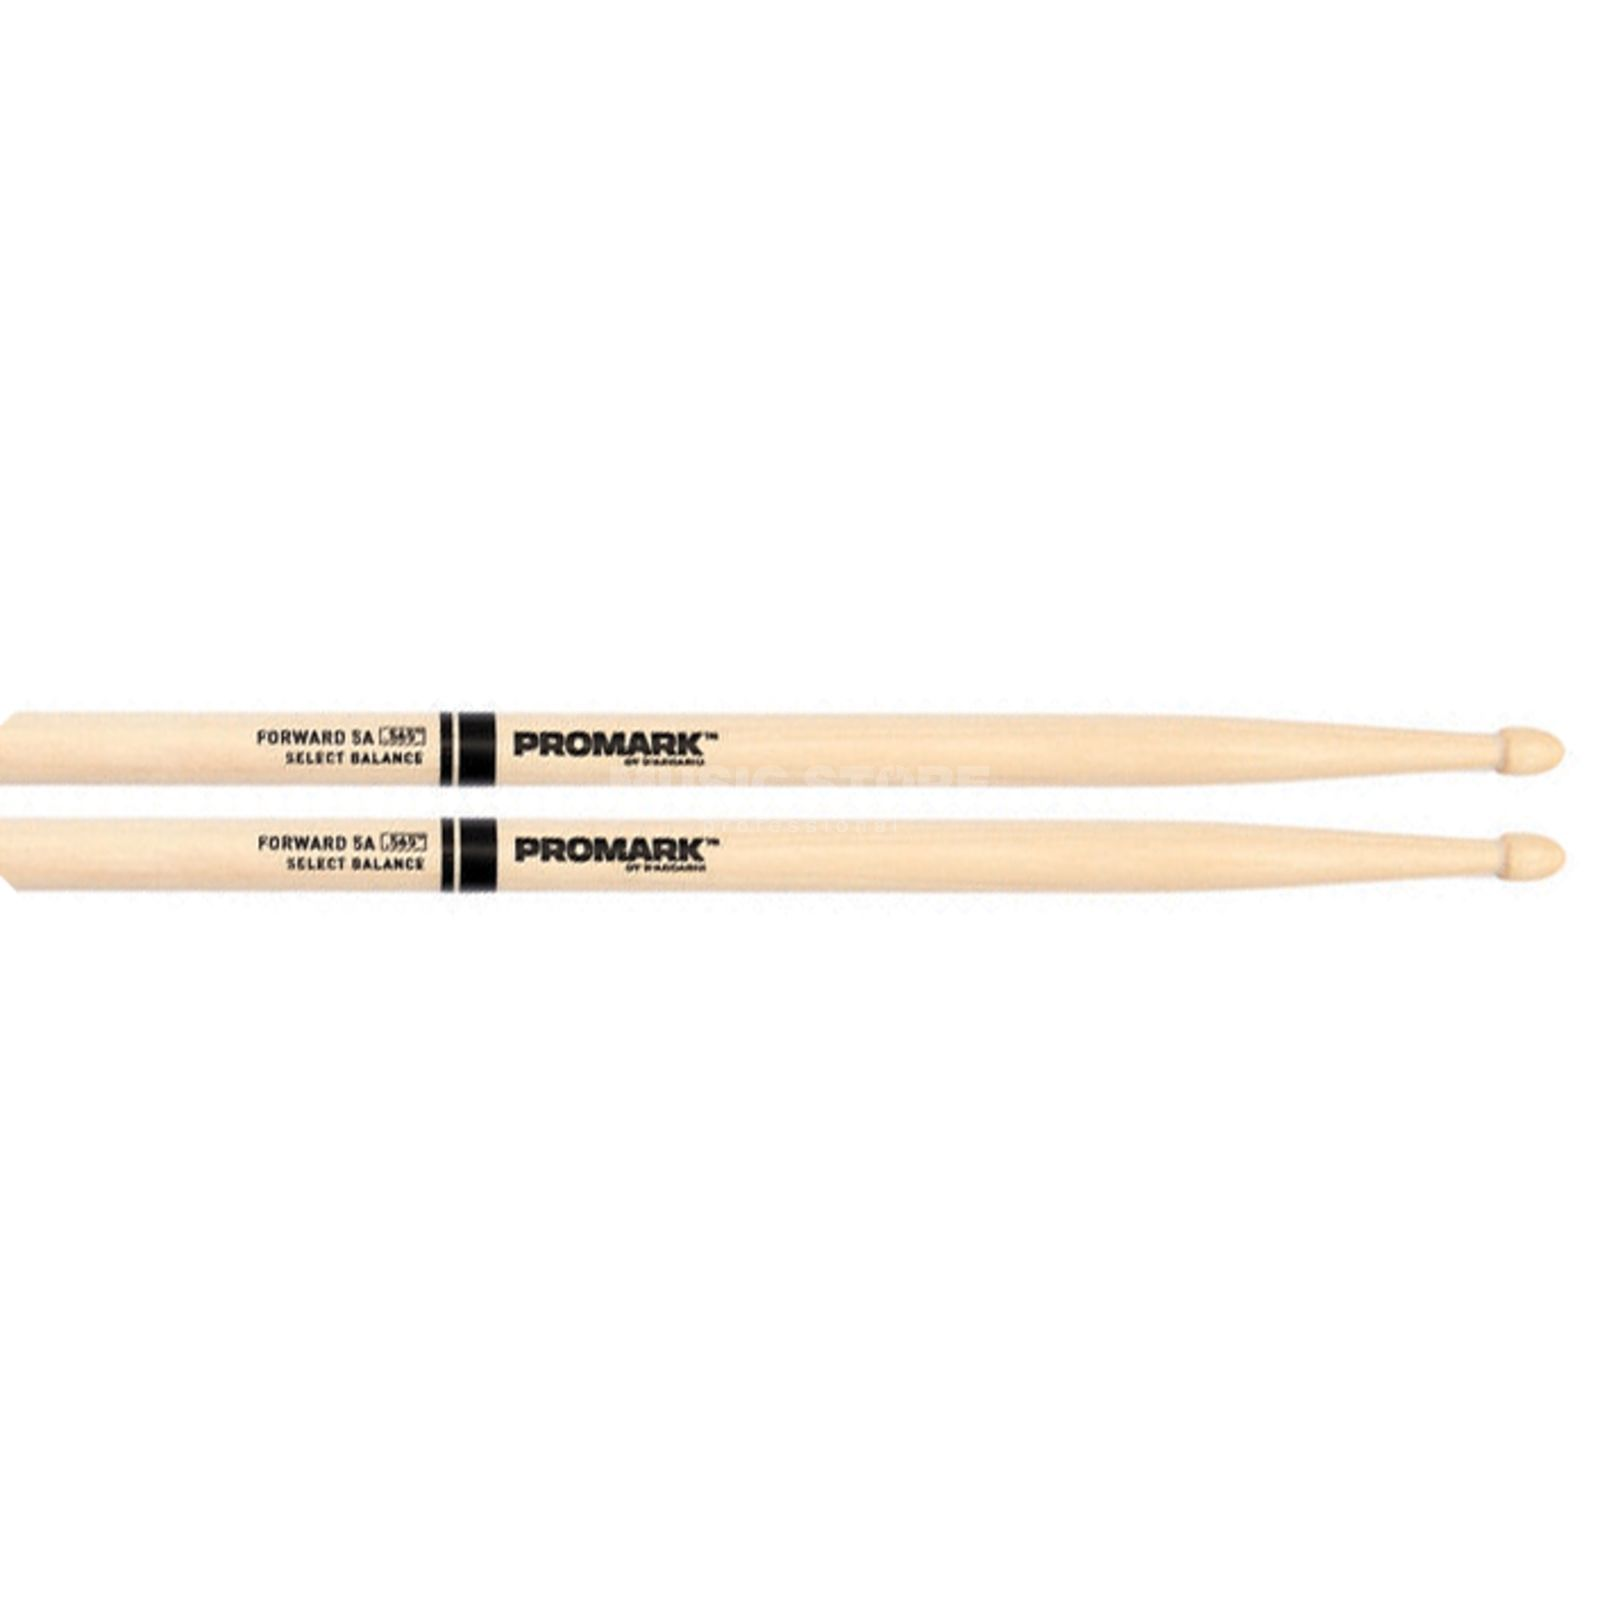 PRO-MARK Select Balance Sticks FBH565AW Forward Balance, Acorn Tip Изображение товара